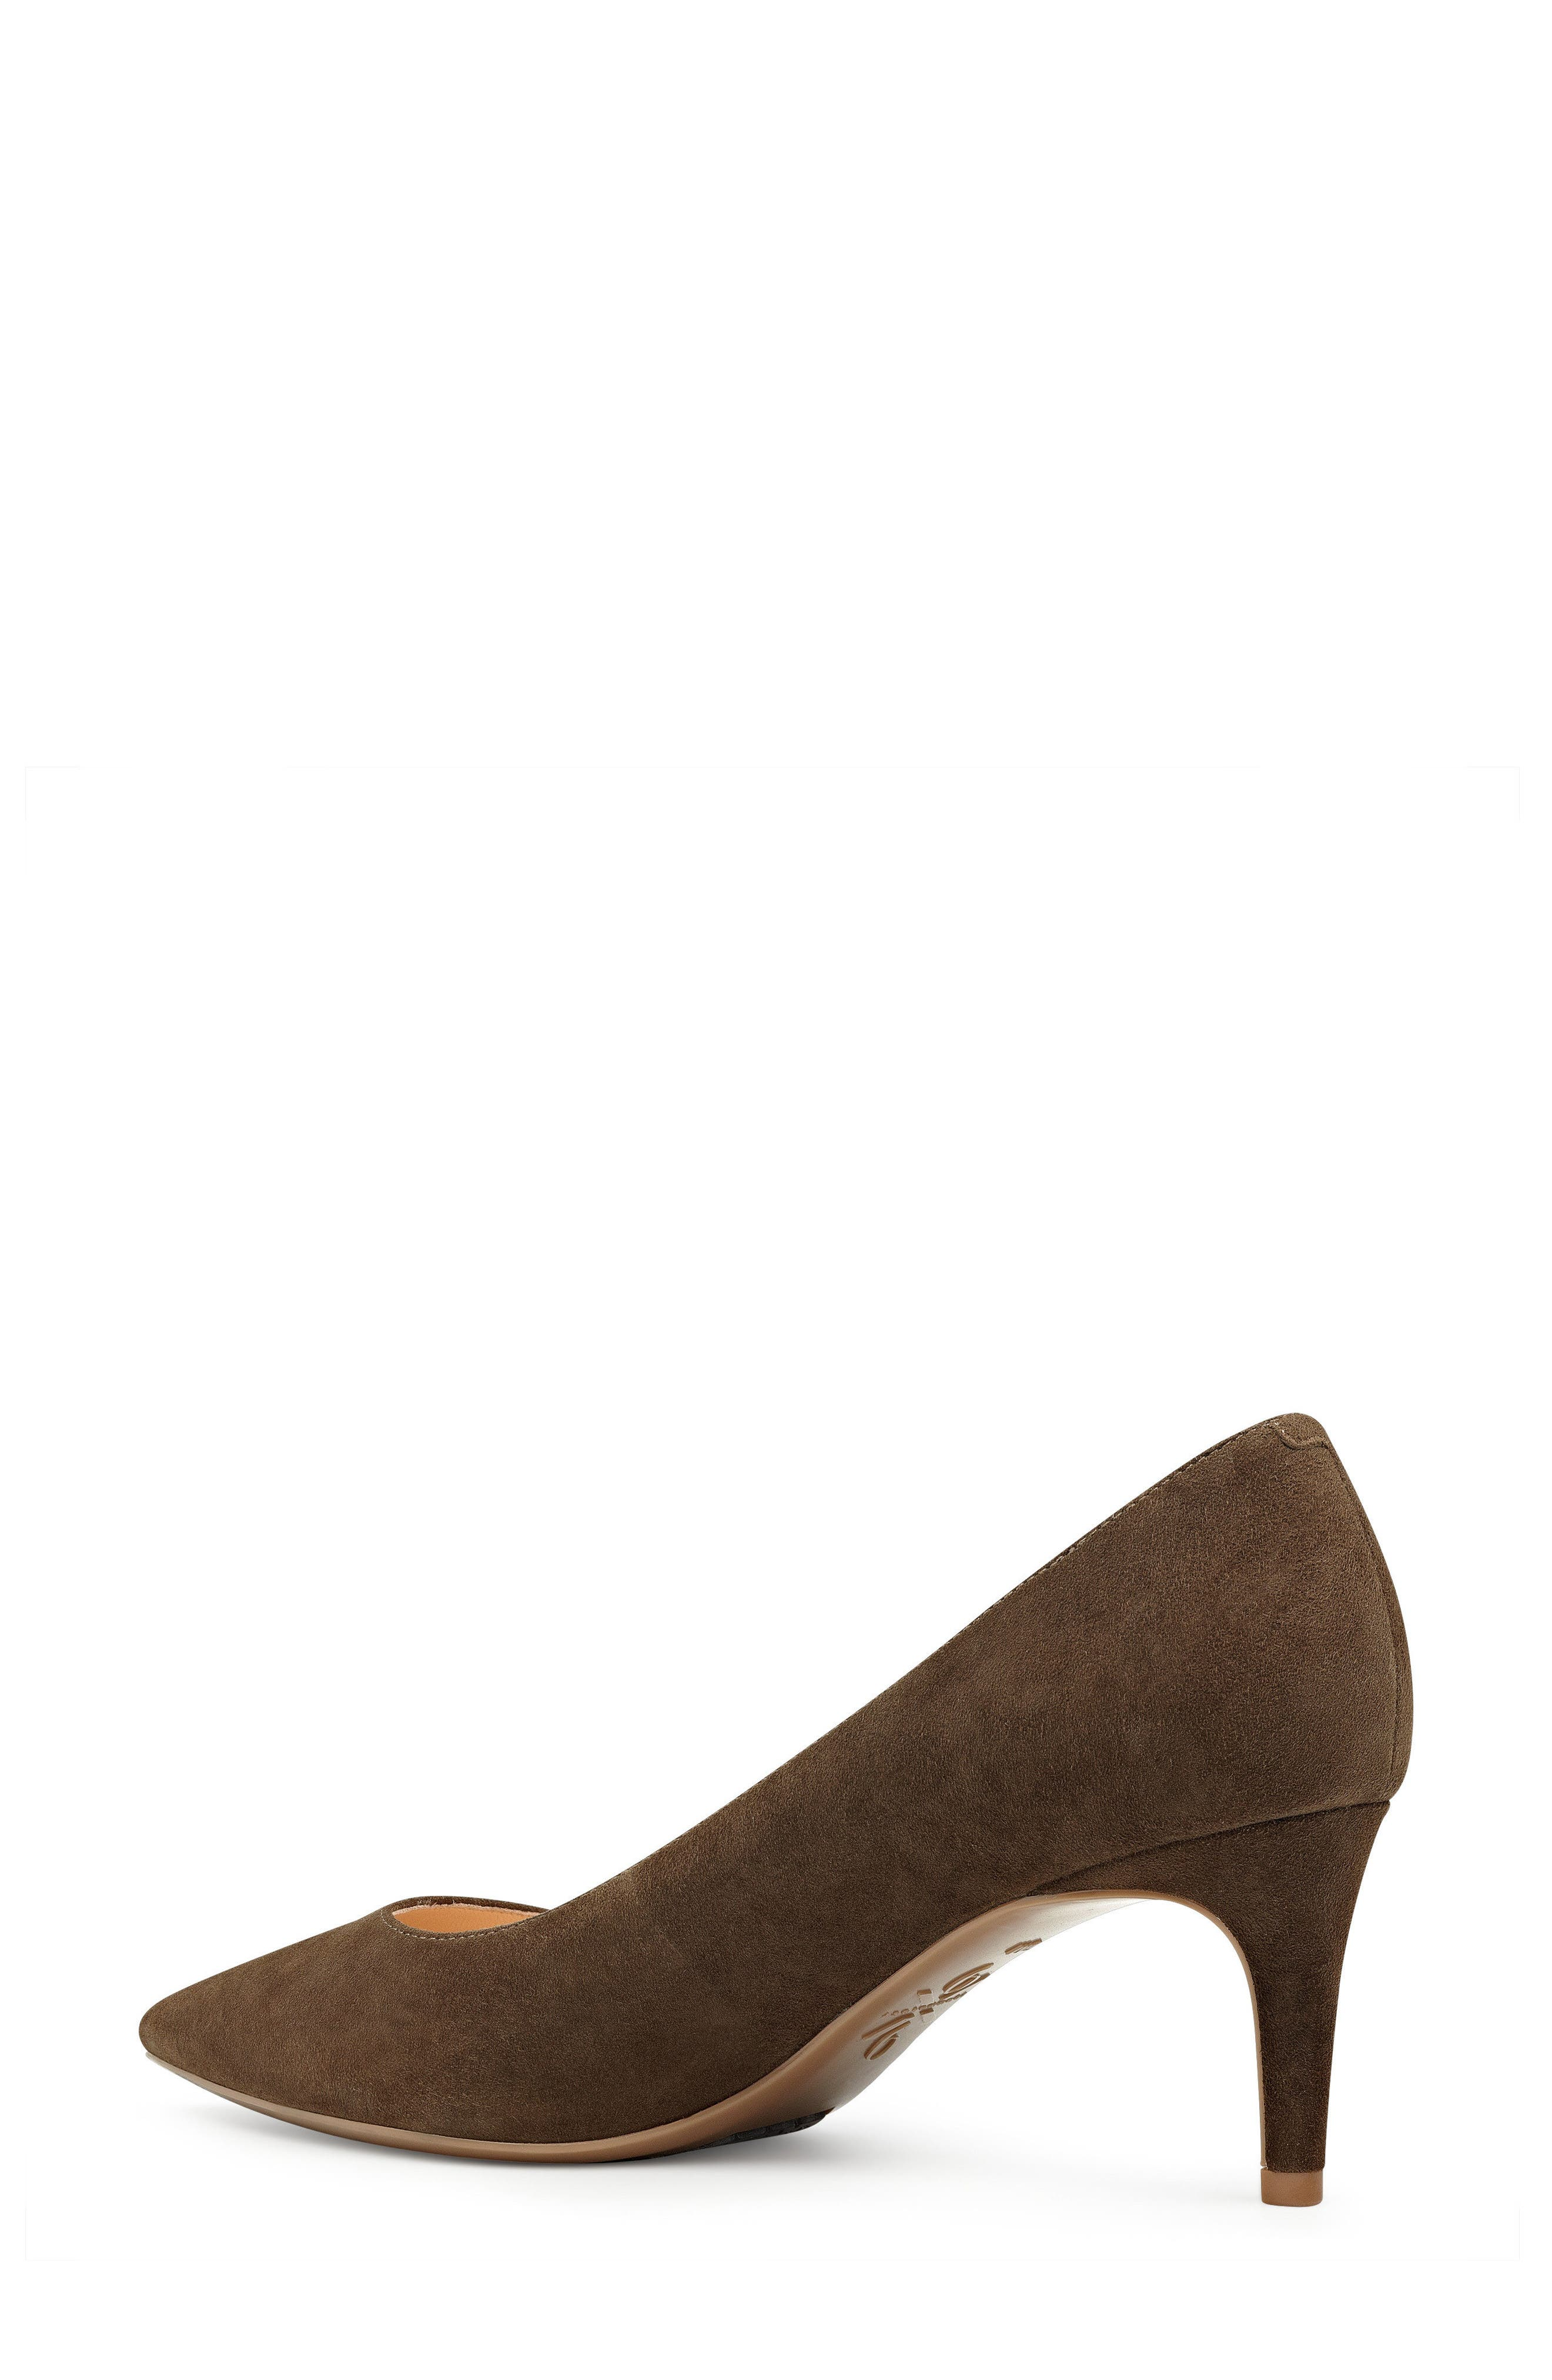 Soho Pointy Toe Pump,                             Alternate thumbnail 18, color,